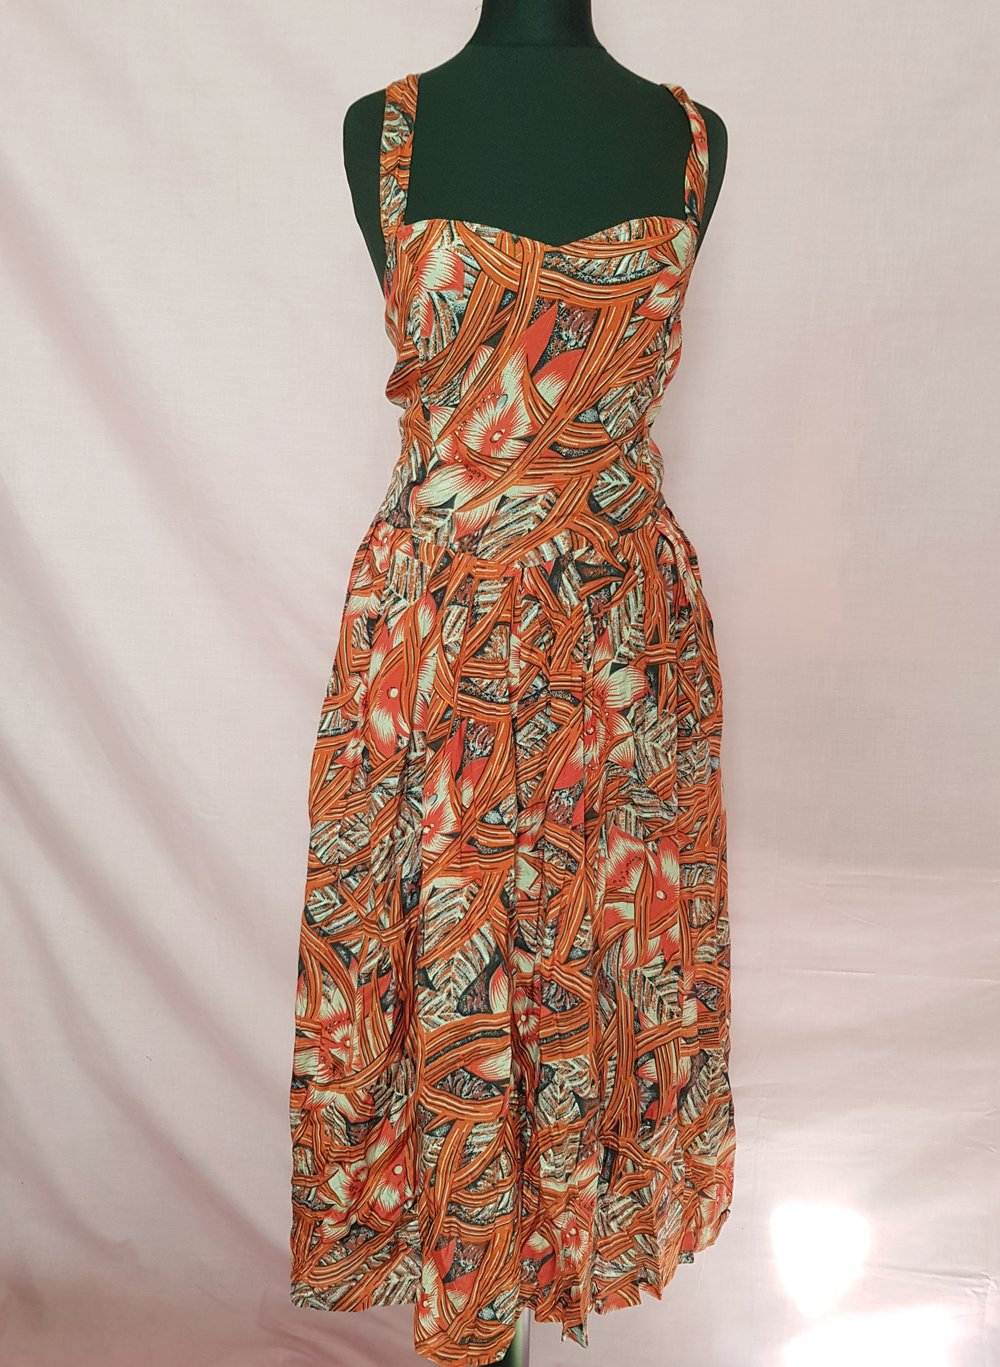 145f7c5a10ec1 Cheapest Vintage Clothing on Ebay Haul- Everything £1 and Under ...